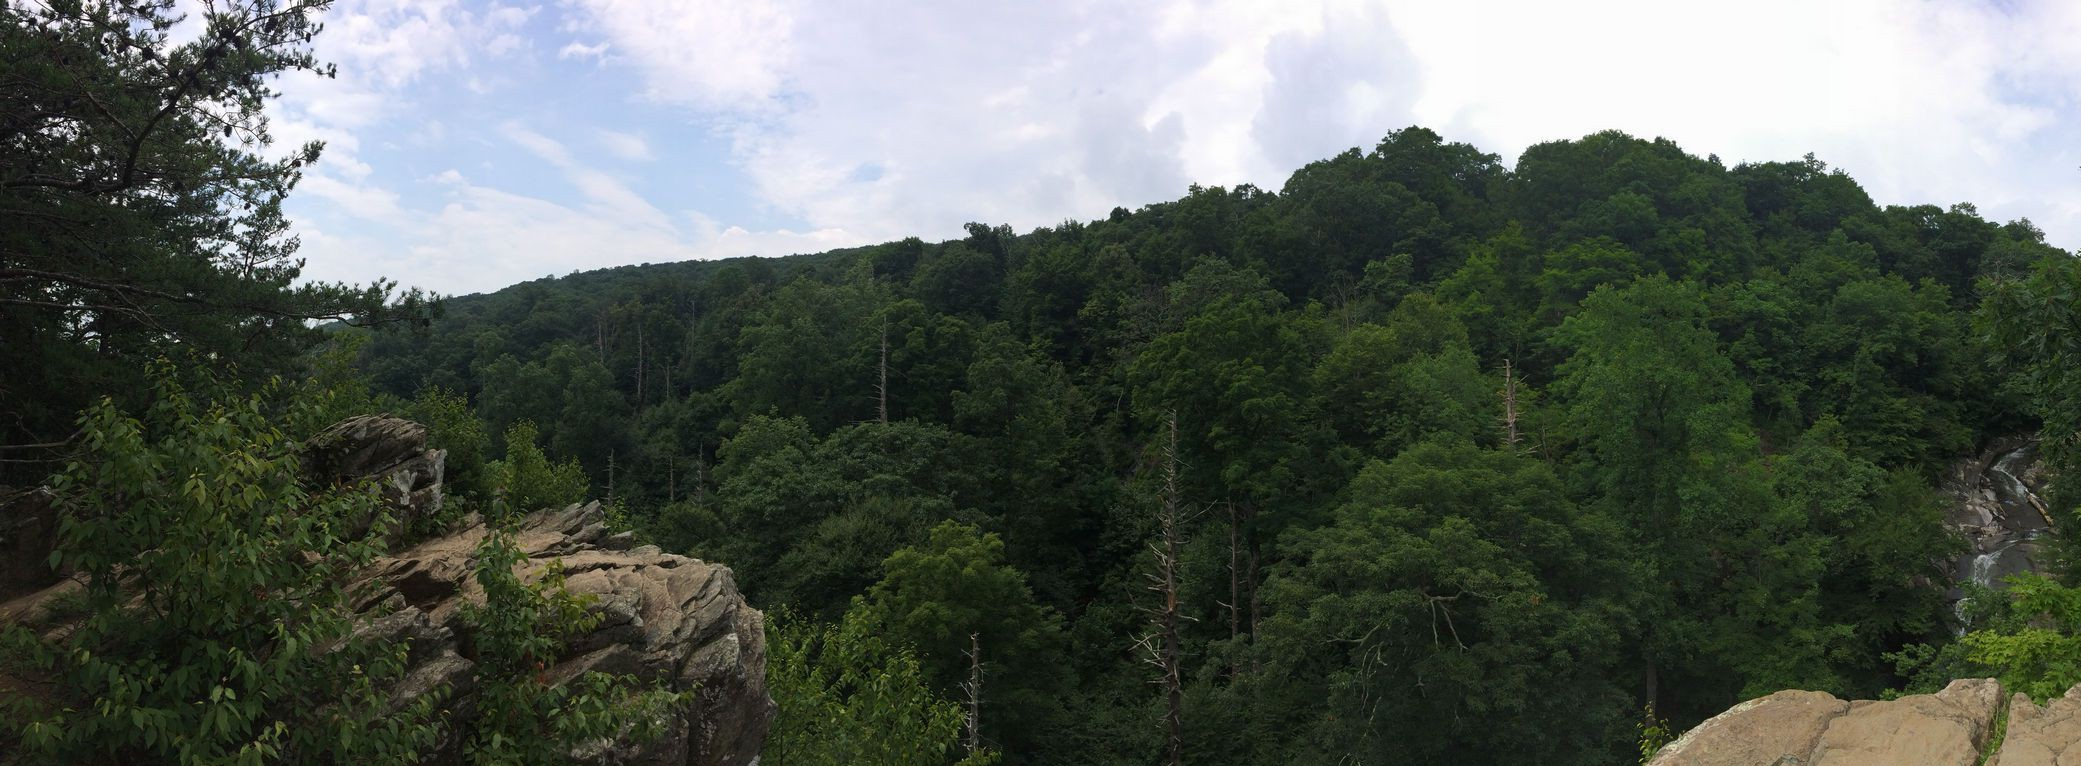 Shenandoah: Whiteoak Canyon Trail (Half)